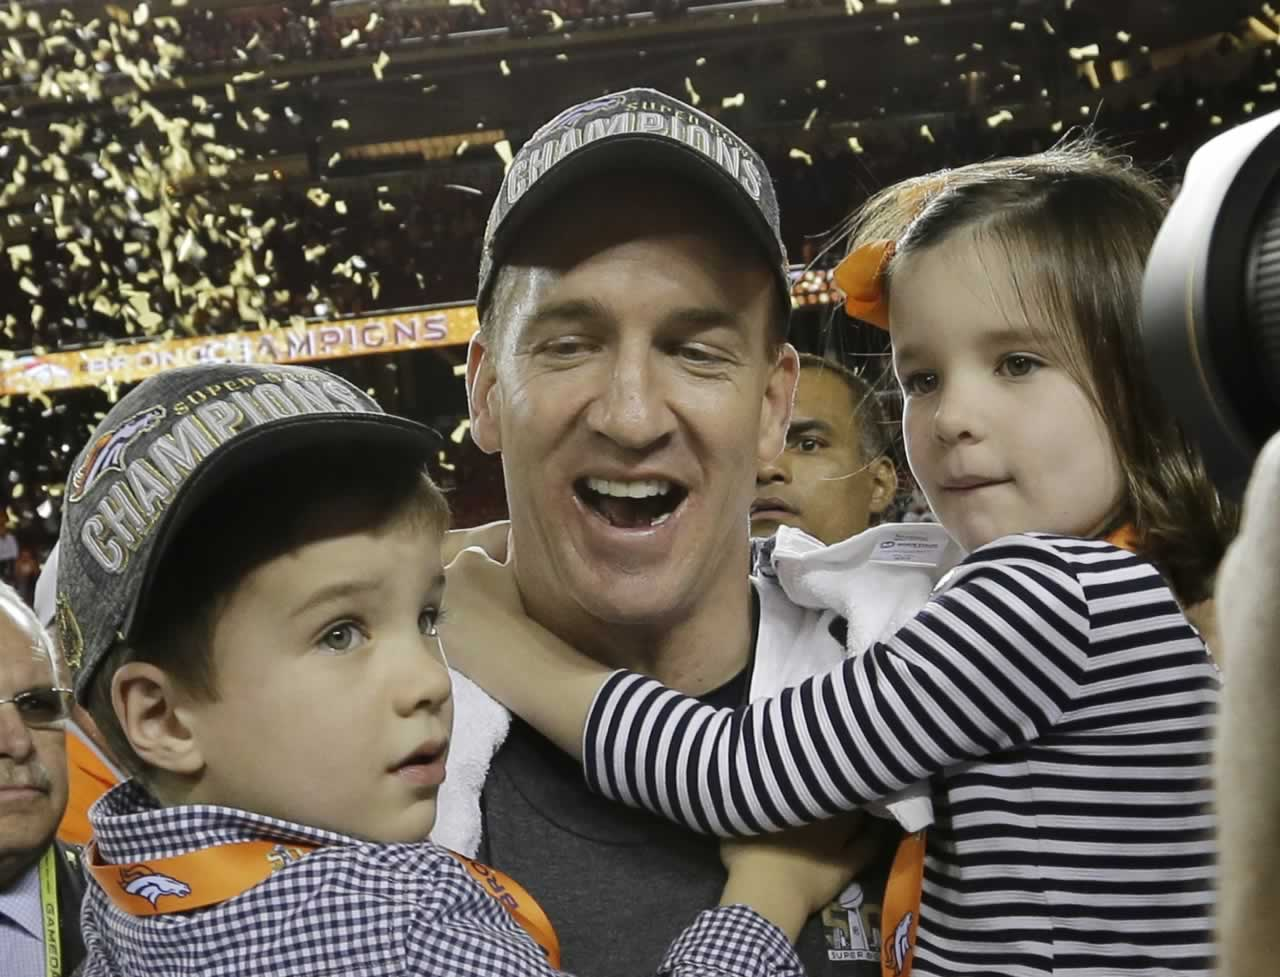 <div class='meta'><div class='origin-logo' data-origin='none'></div><span class='caption-text' data-credit='AP Photo/David J. Phillip'>Broncos' Peyton Manning celebrates with his son Marshall and daughter Mosley after the NFL Super Bowl 50 football game Sunday, Feb. 7, 2016, in Santa Clara, Calif.</span></div>